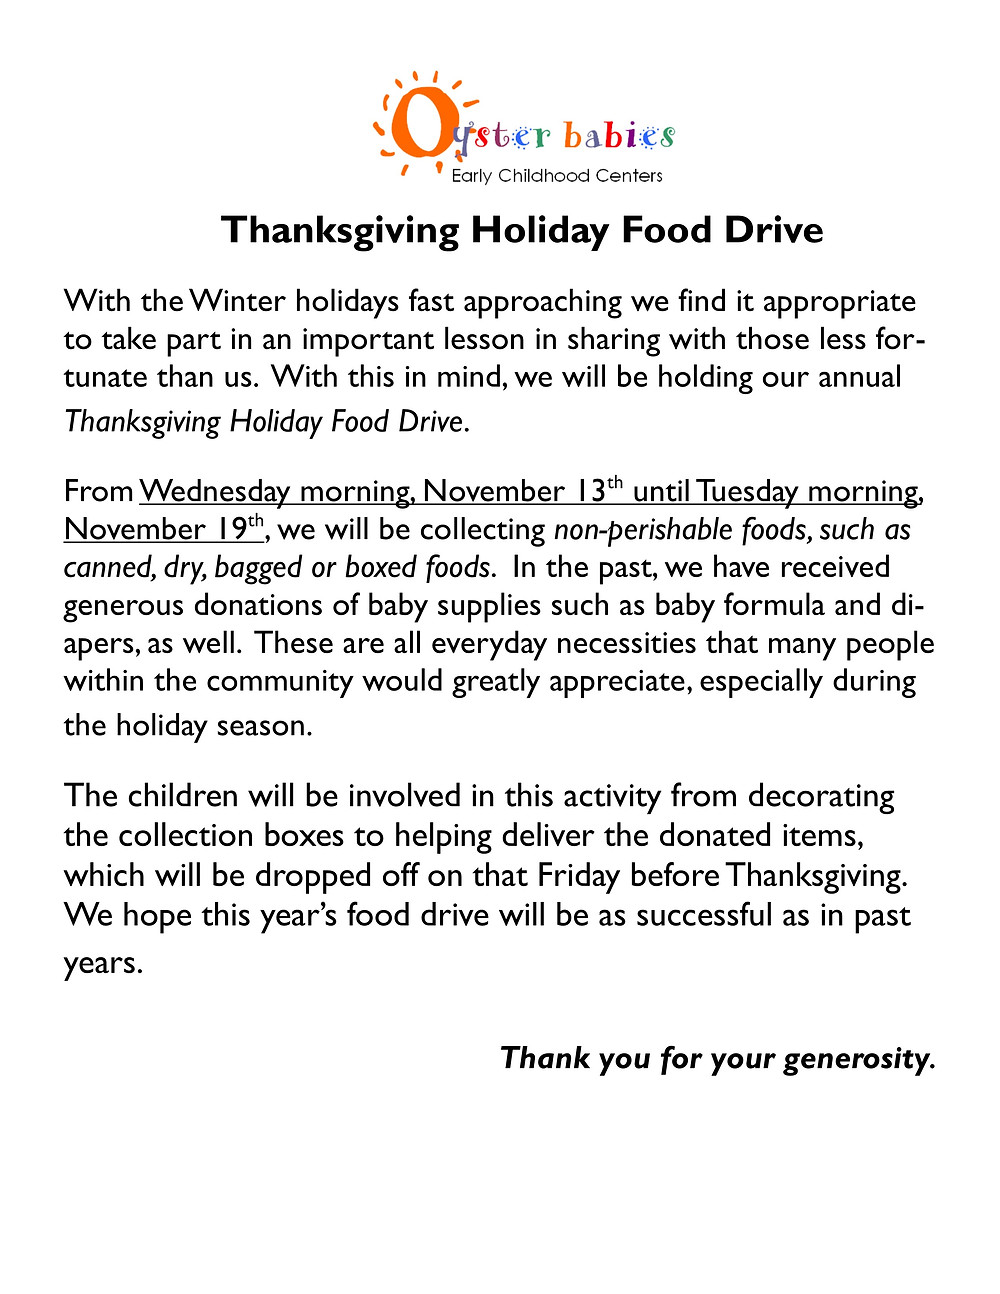 Oyster Babies Thanksgiving Holiday Food Drive 2019